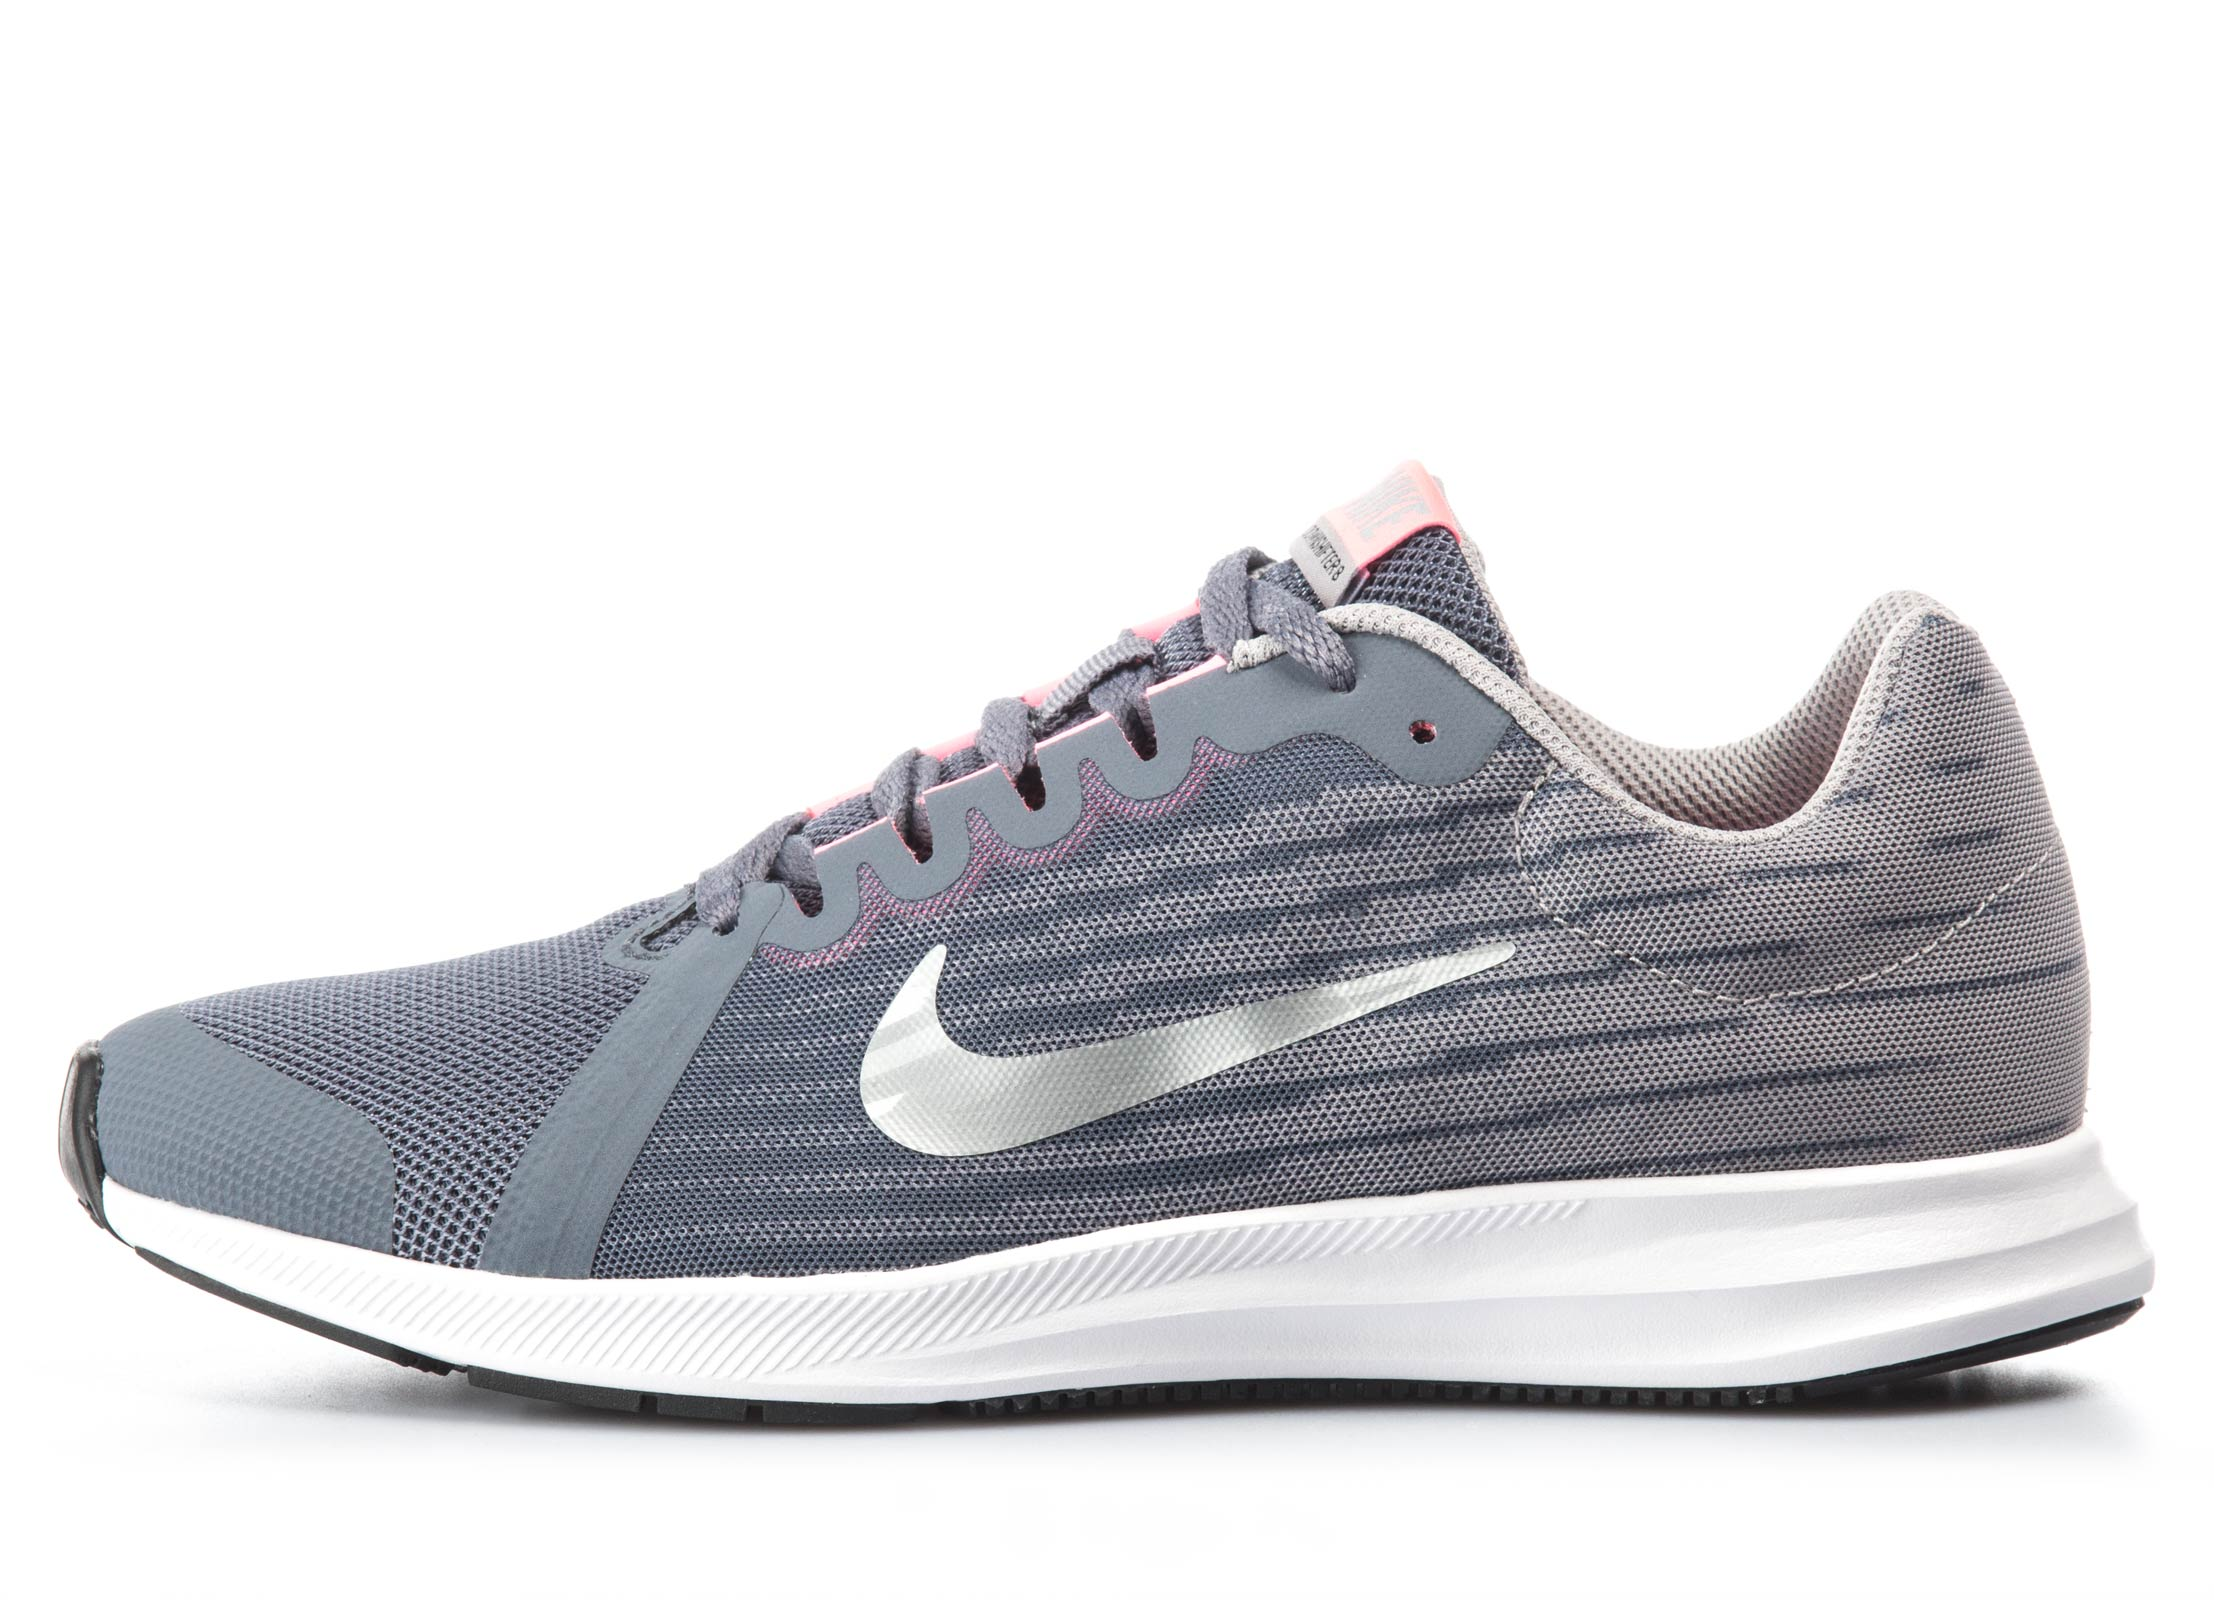 NIKE DOWNSHIFTER 8 (GS) 922855-002 Ανθρακί